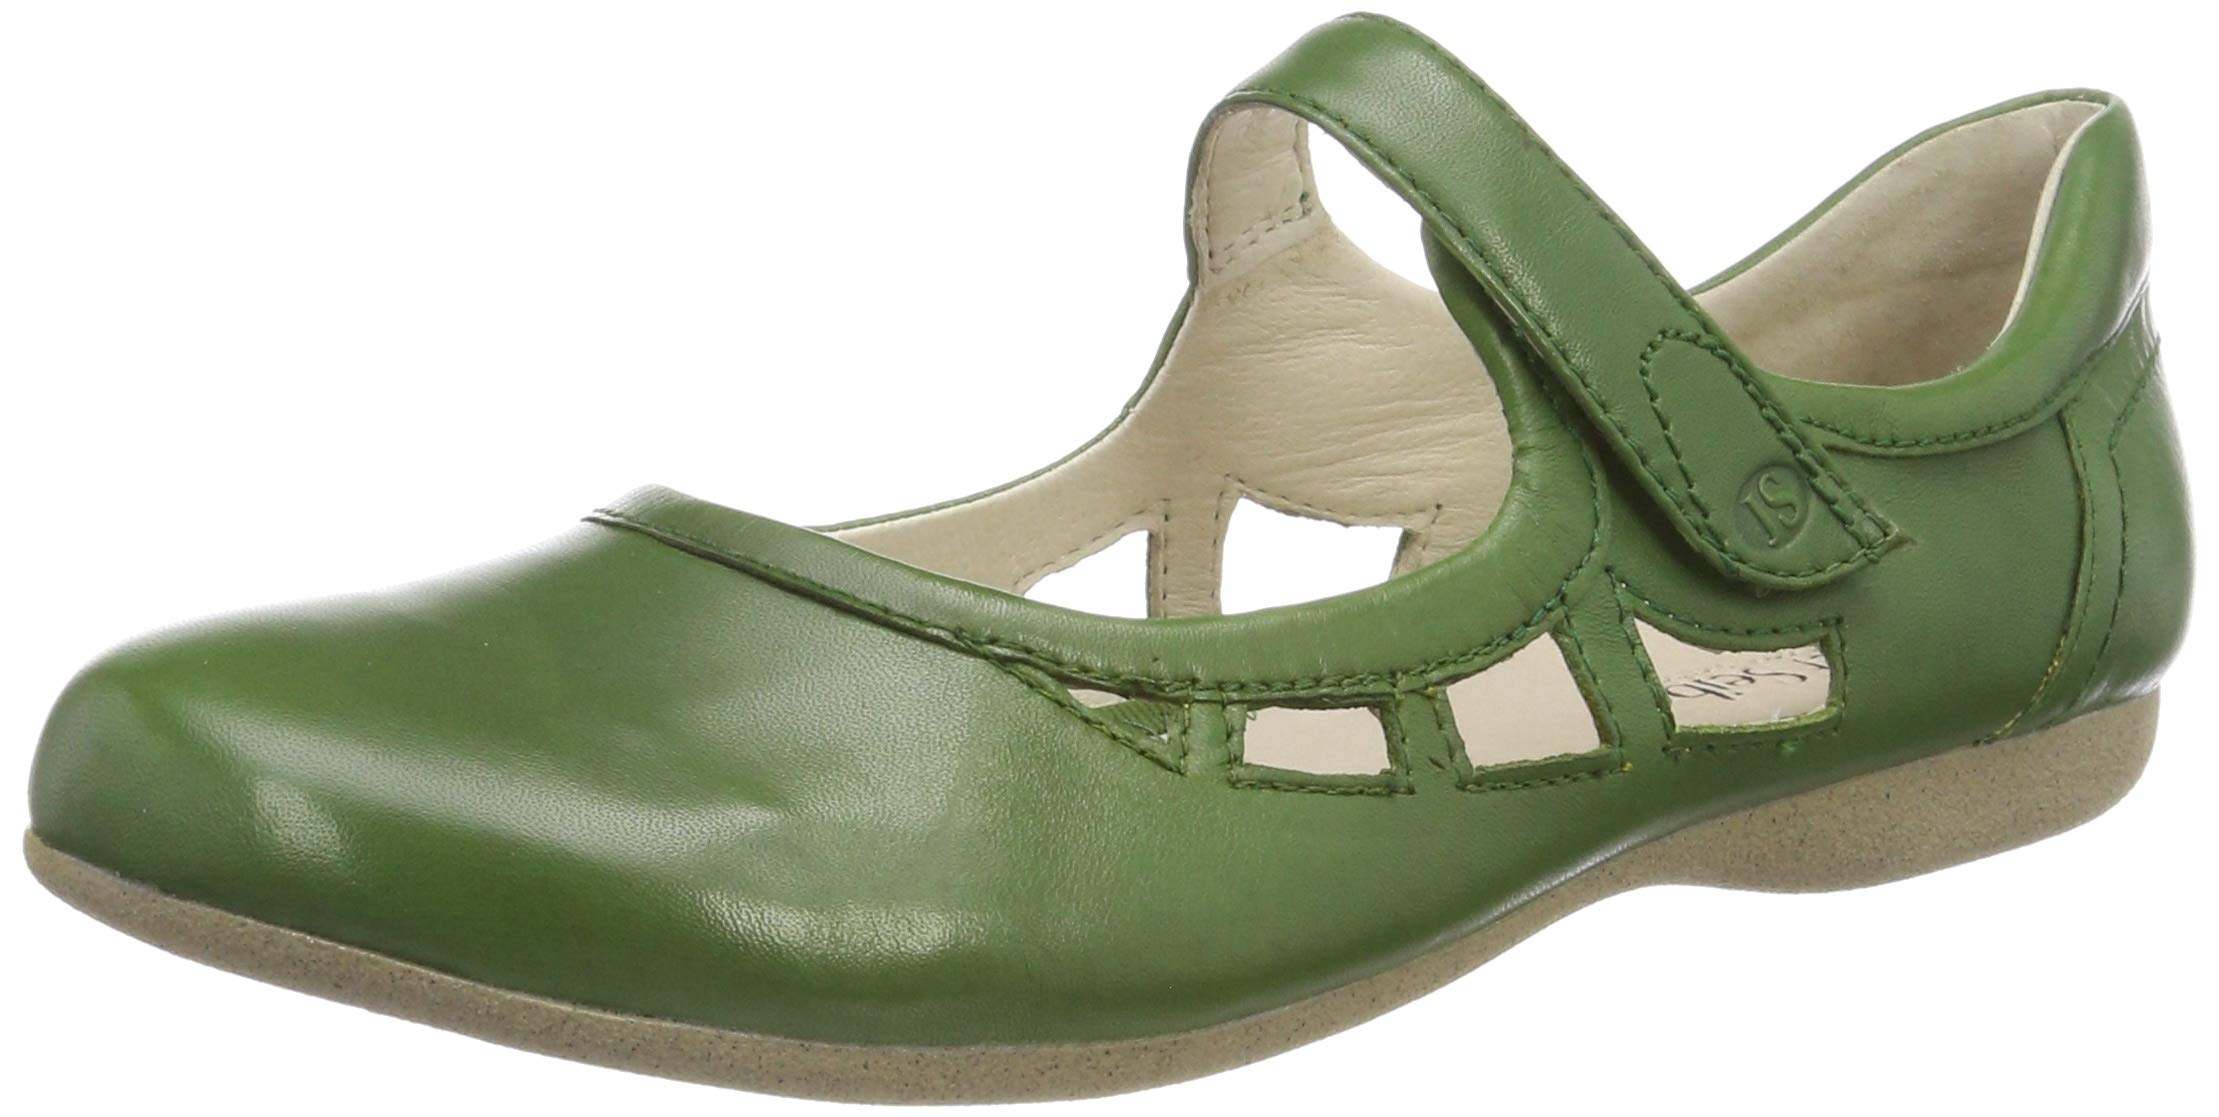 Josef Seibel Women Ballet Flats Fiona 55, Ladies Strappy Ballerinas